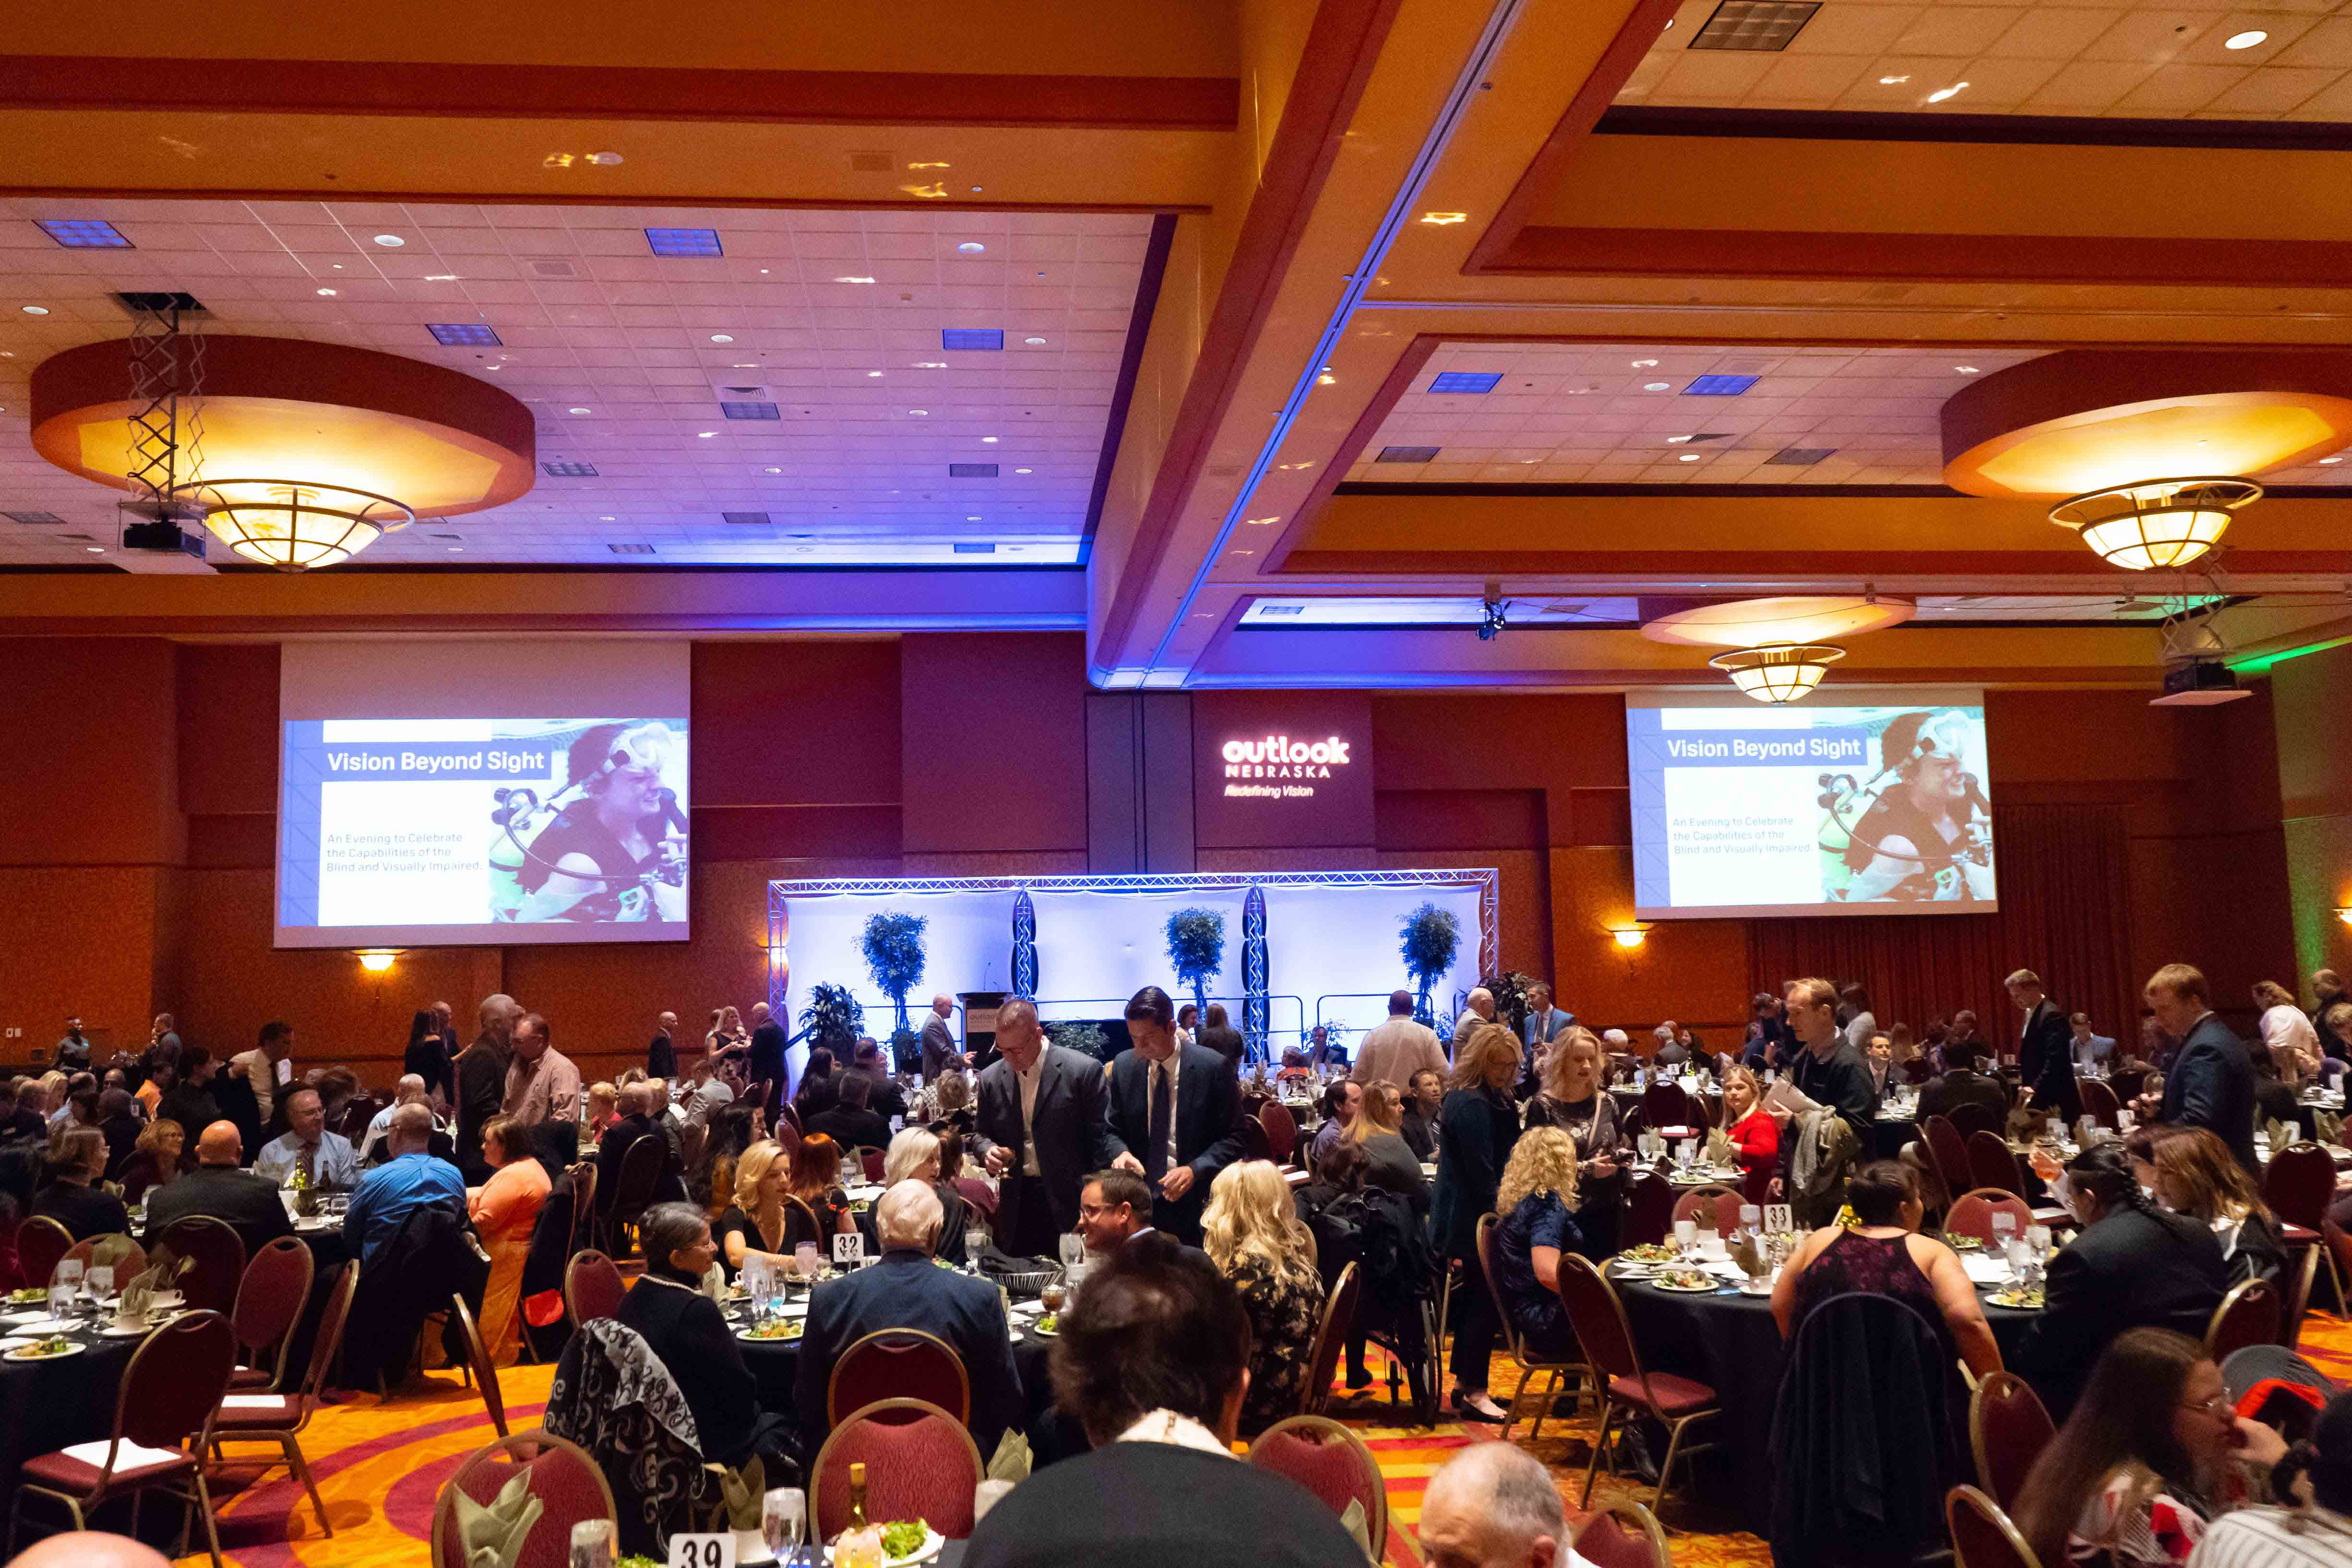 Image of a the full banquet hall at vision beyond sight